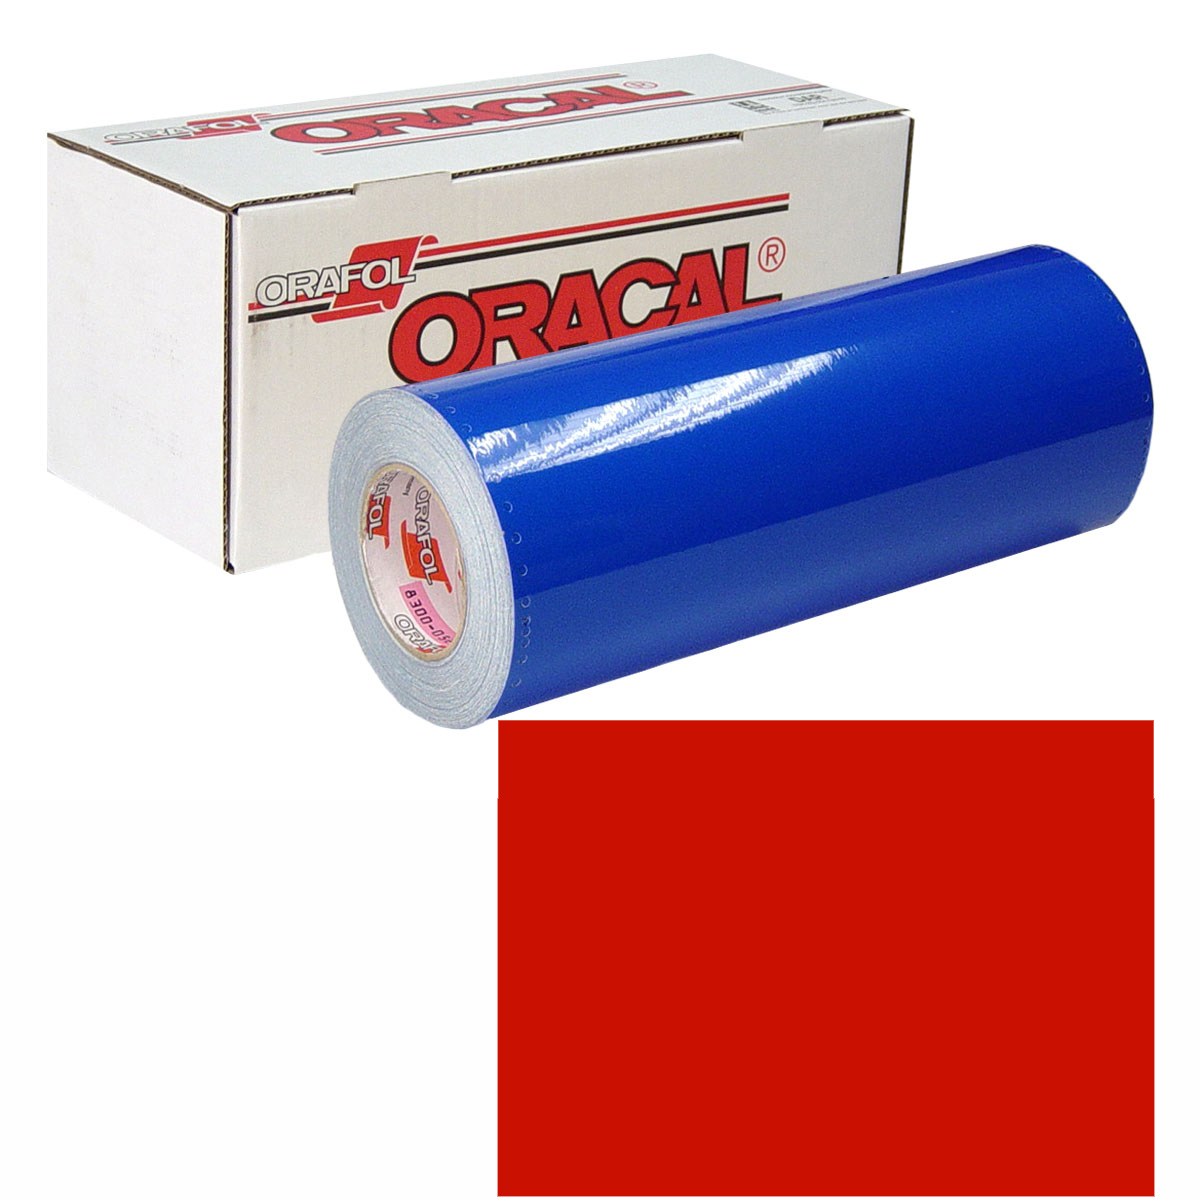 ORACAL 631 Unp 24in X 10yd 032 Light Red